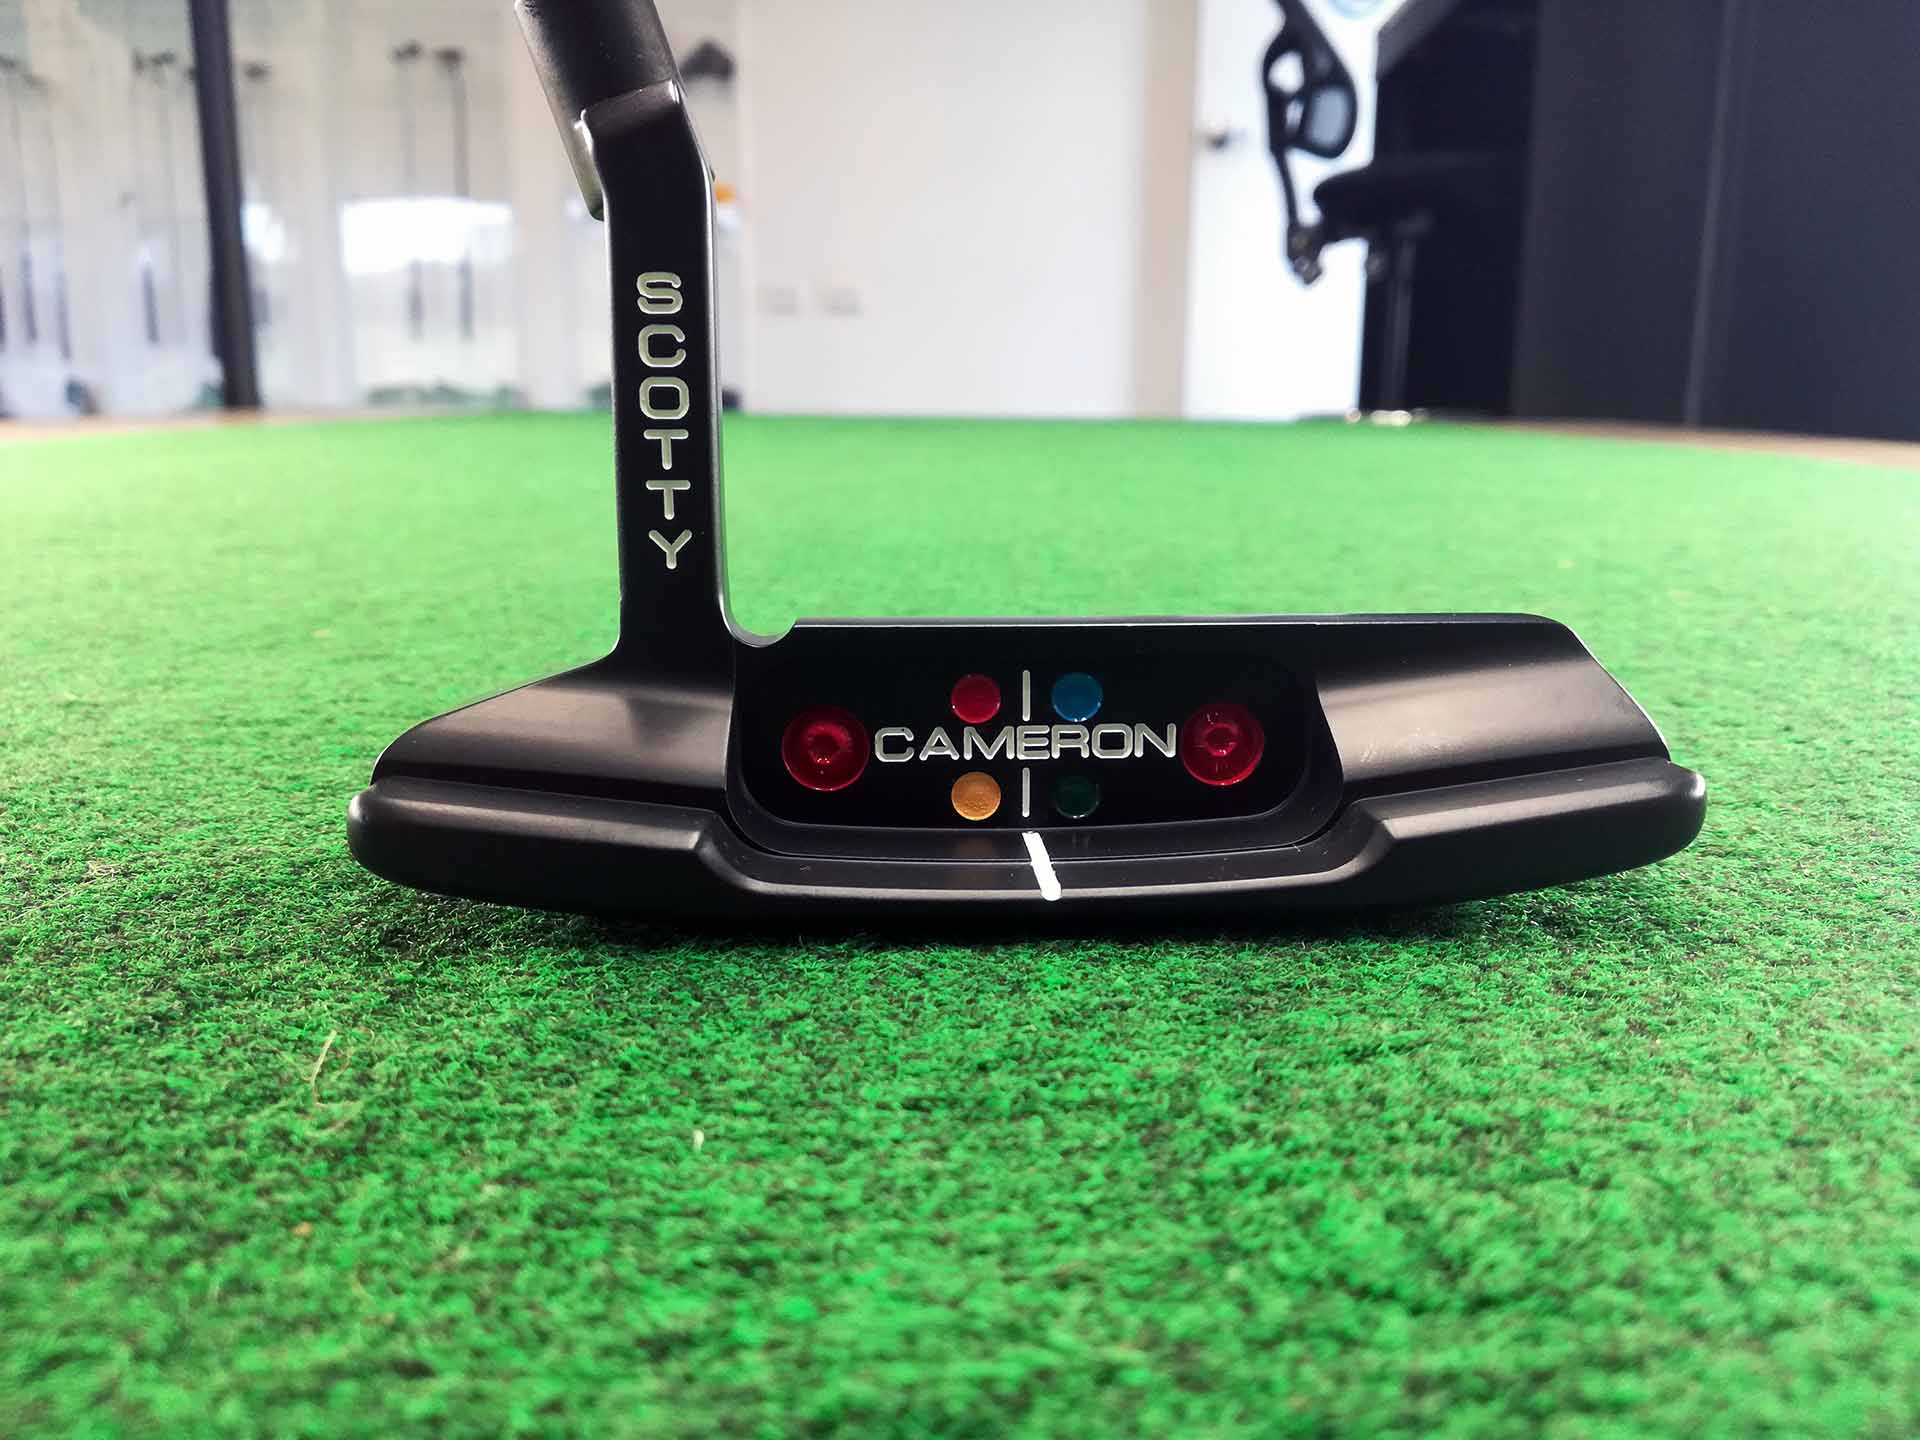 Scotty Cameron Putter Refurb with Ceramic Black Paint and Custom Infill